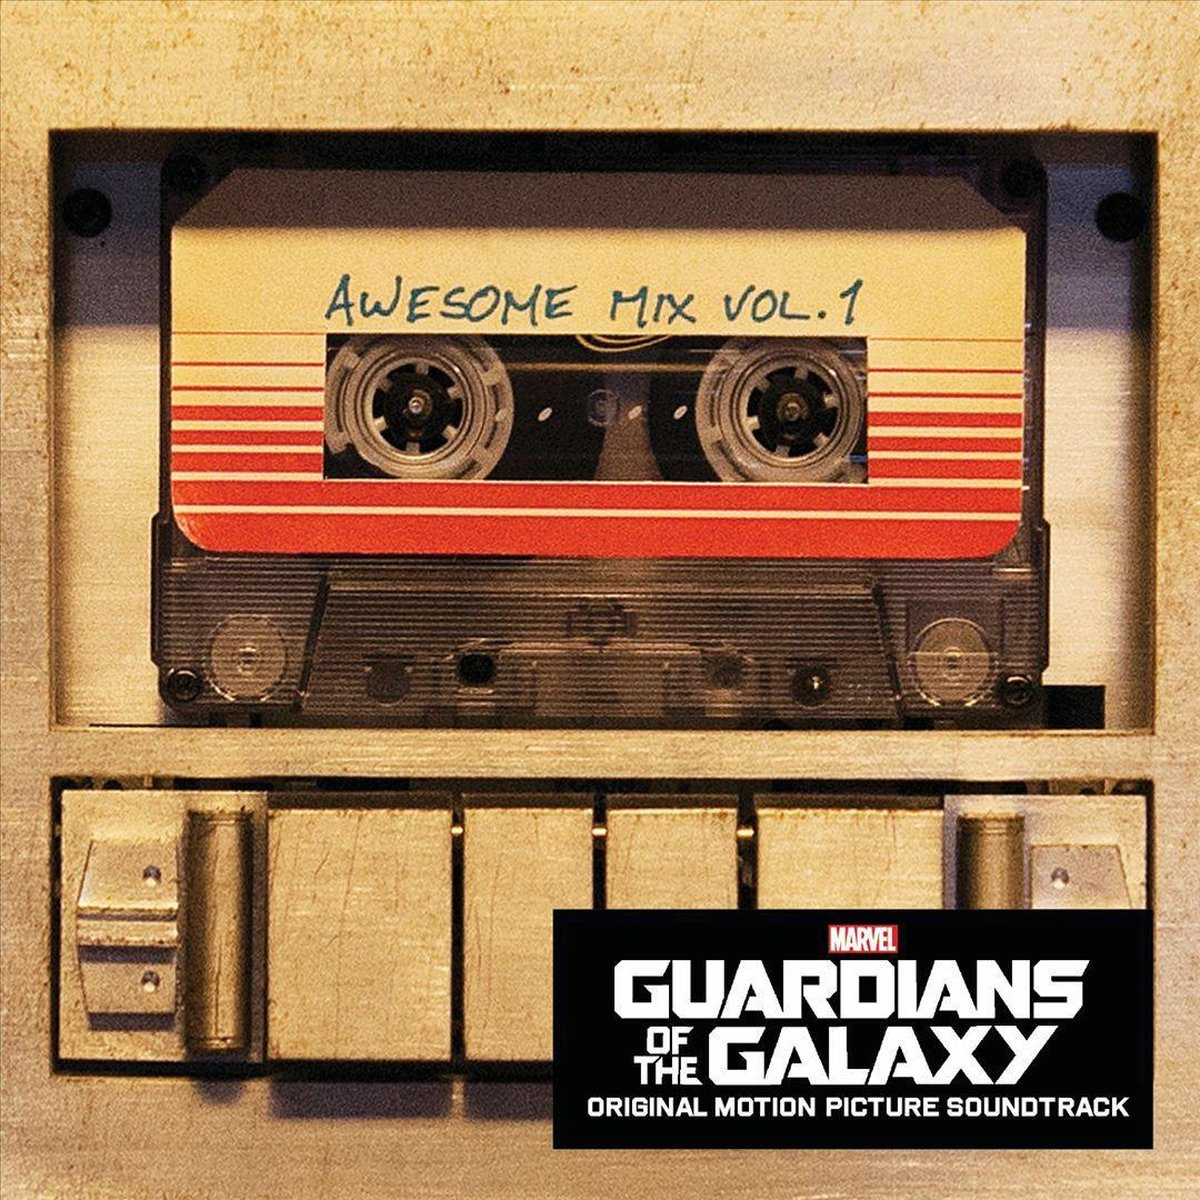 Guardians of the Galaxy: Awesome Mix Vol. 1 (LP) - Ost